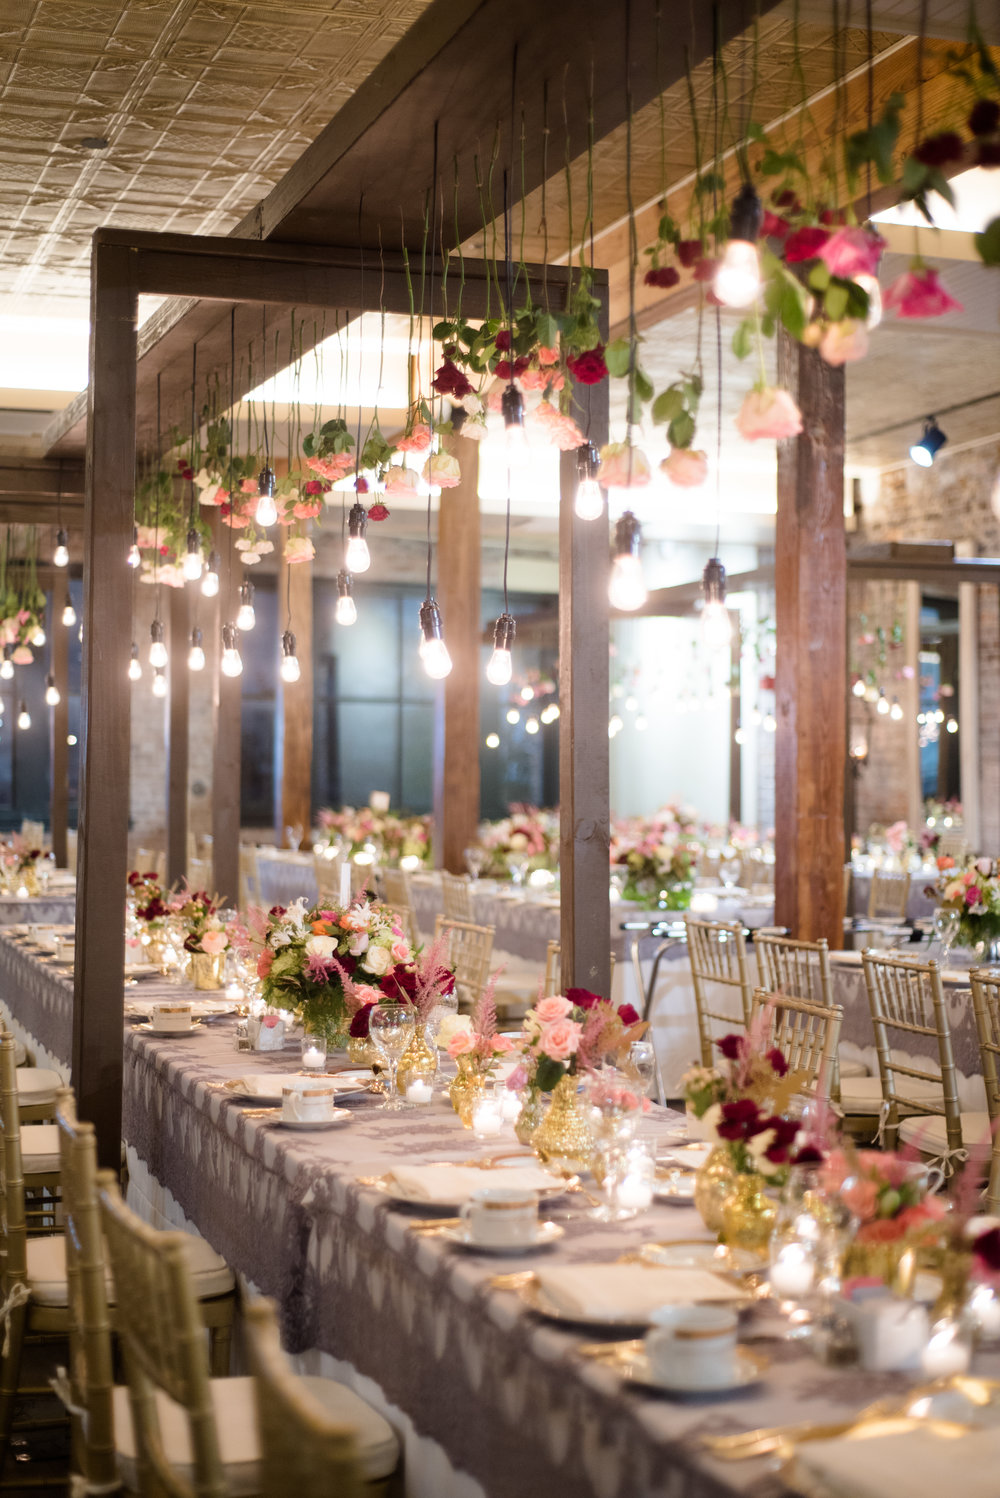 Sapphire Events | Jacqueline Dallimore Photography | The Chicory Venue | Rustic Venue Inspiration | Warehouse Venue | Hanging Flowers | Wedding Planning Tips | What to do after the ring | Engagement Inspiration | Wedding Planning Inspiration | Best Wedding Planner in New Orleans | Essential Engagement Tips